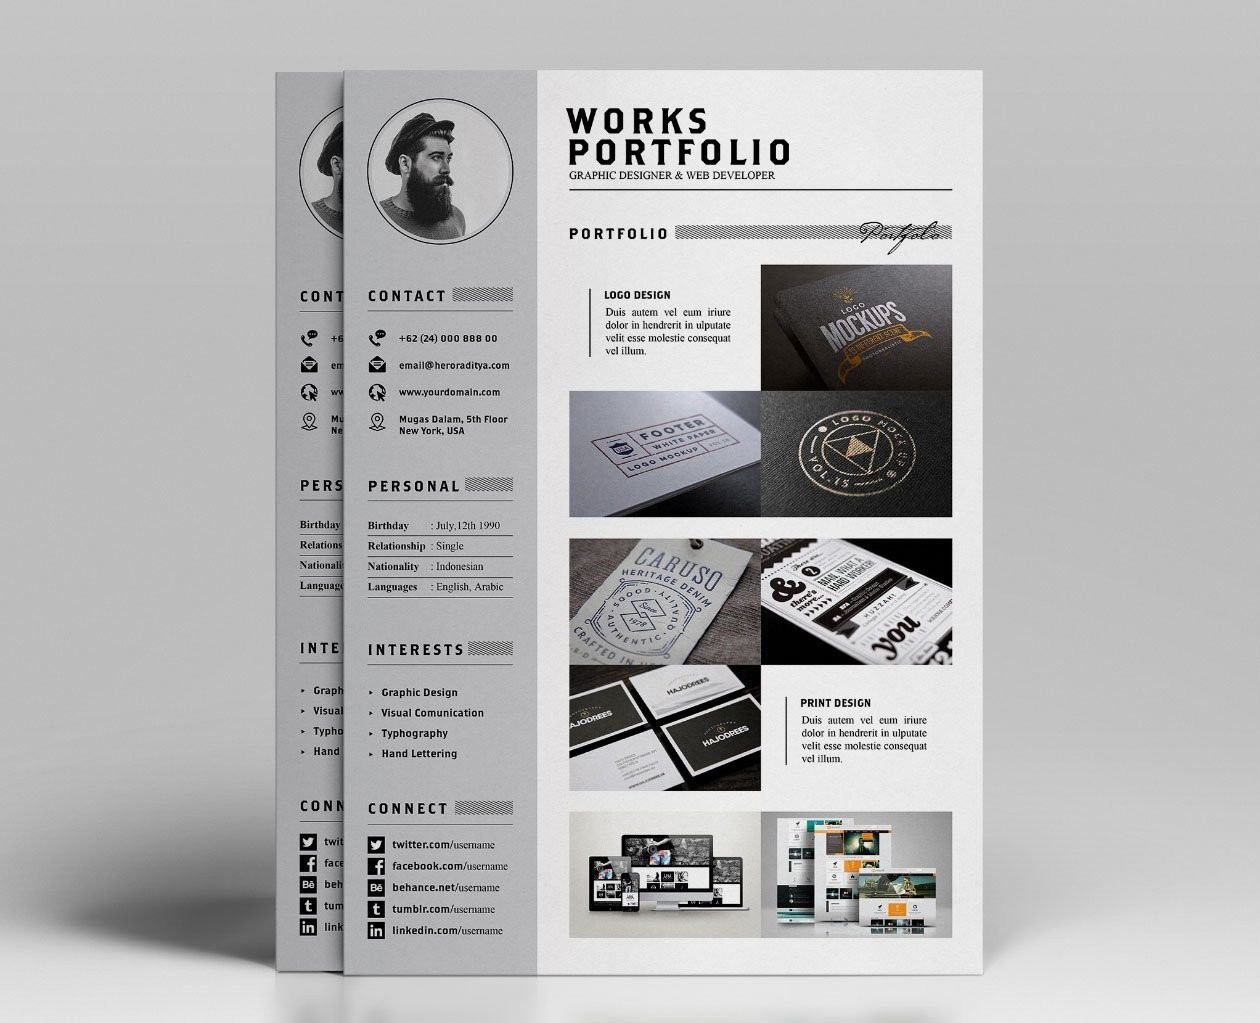 resume template builder  Free Resume, CV and Portfolio Template in Photoshop (PSD ..